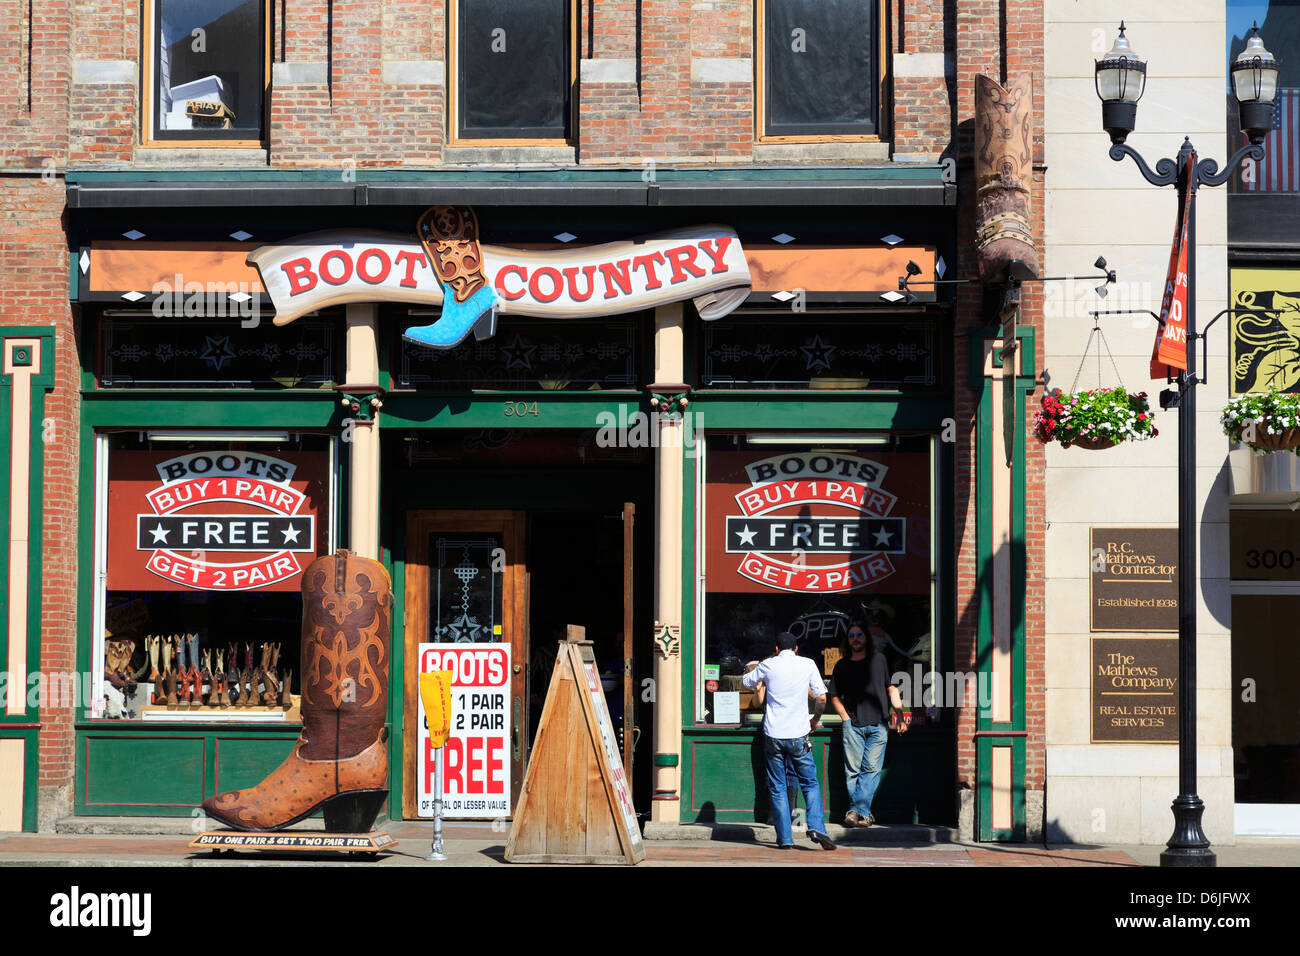 Boot store on Broadway Street, Nashville, Tennessee, United States of America, North America - Stock Image